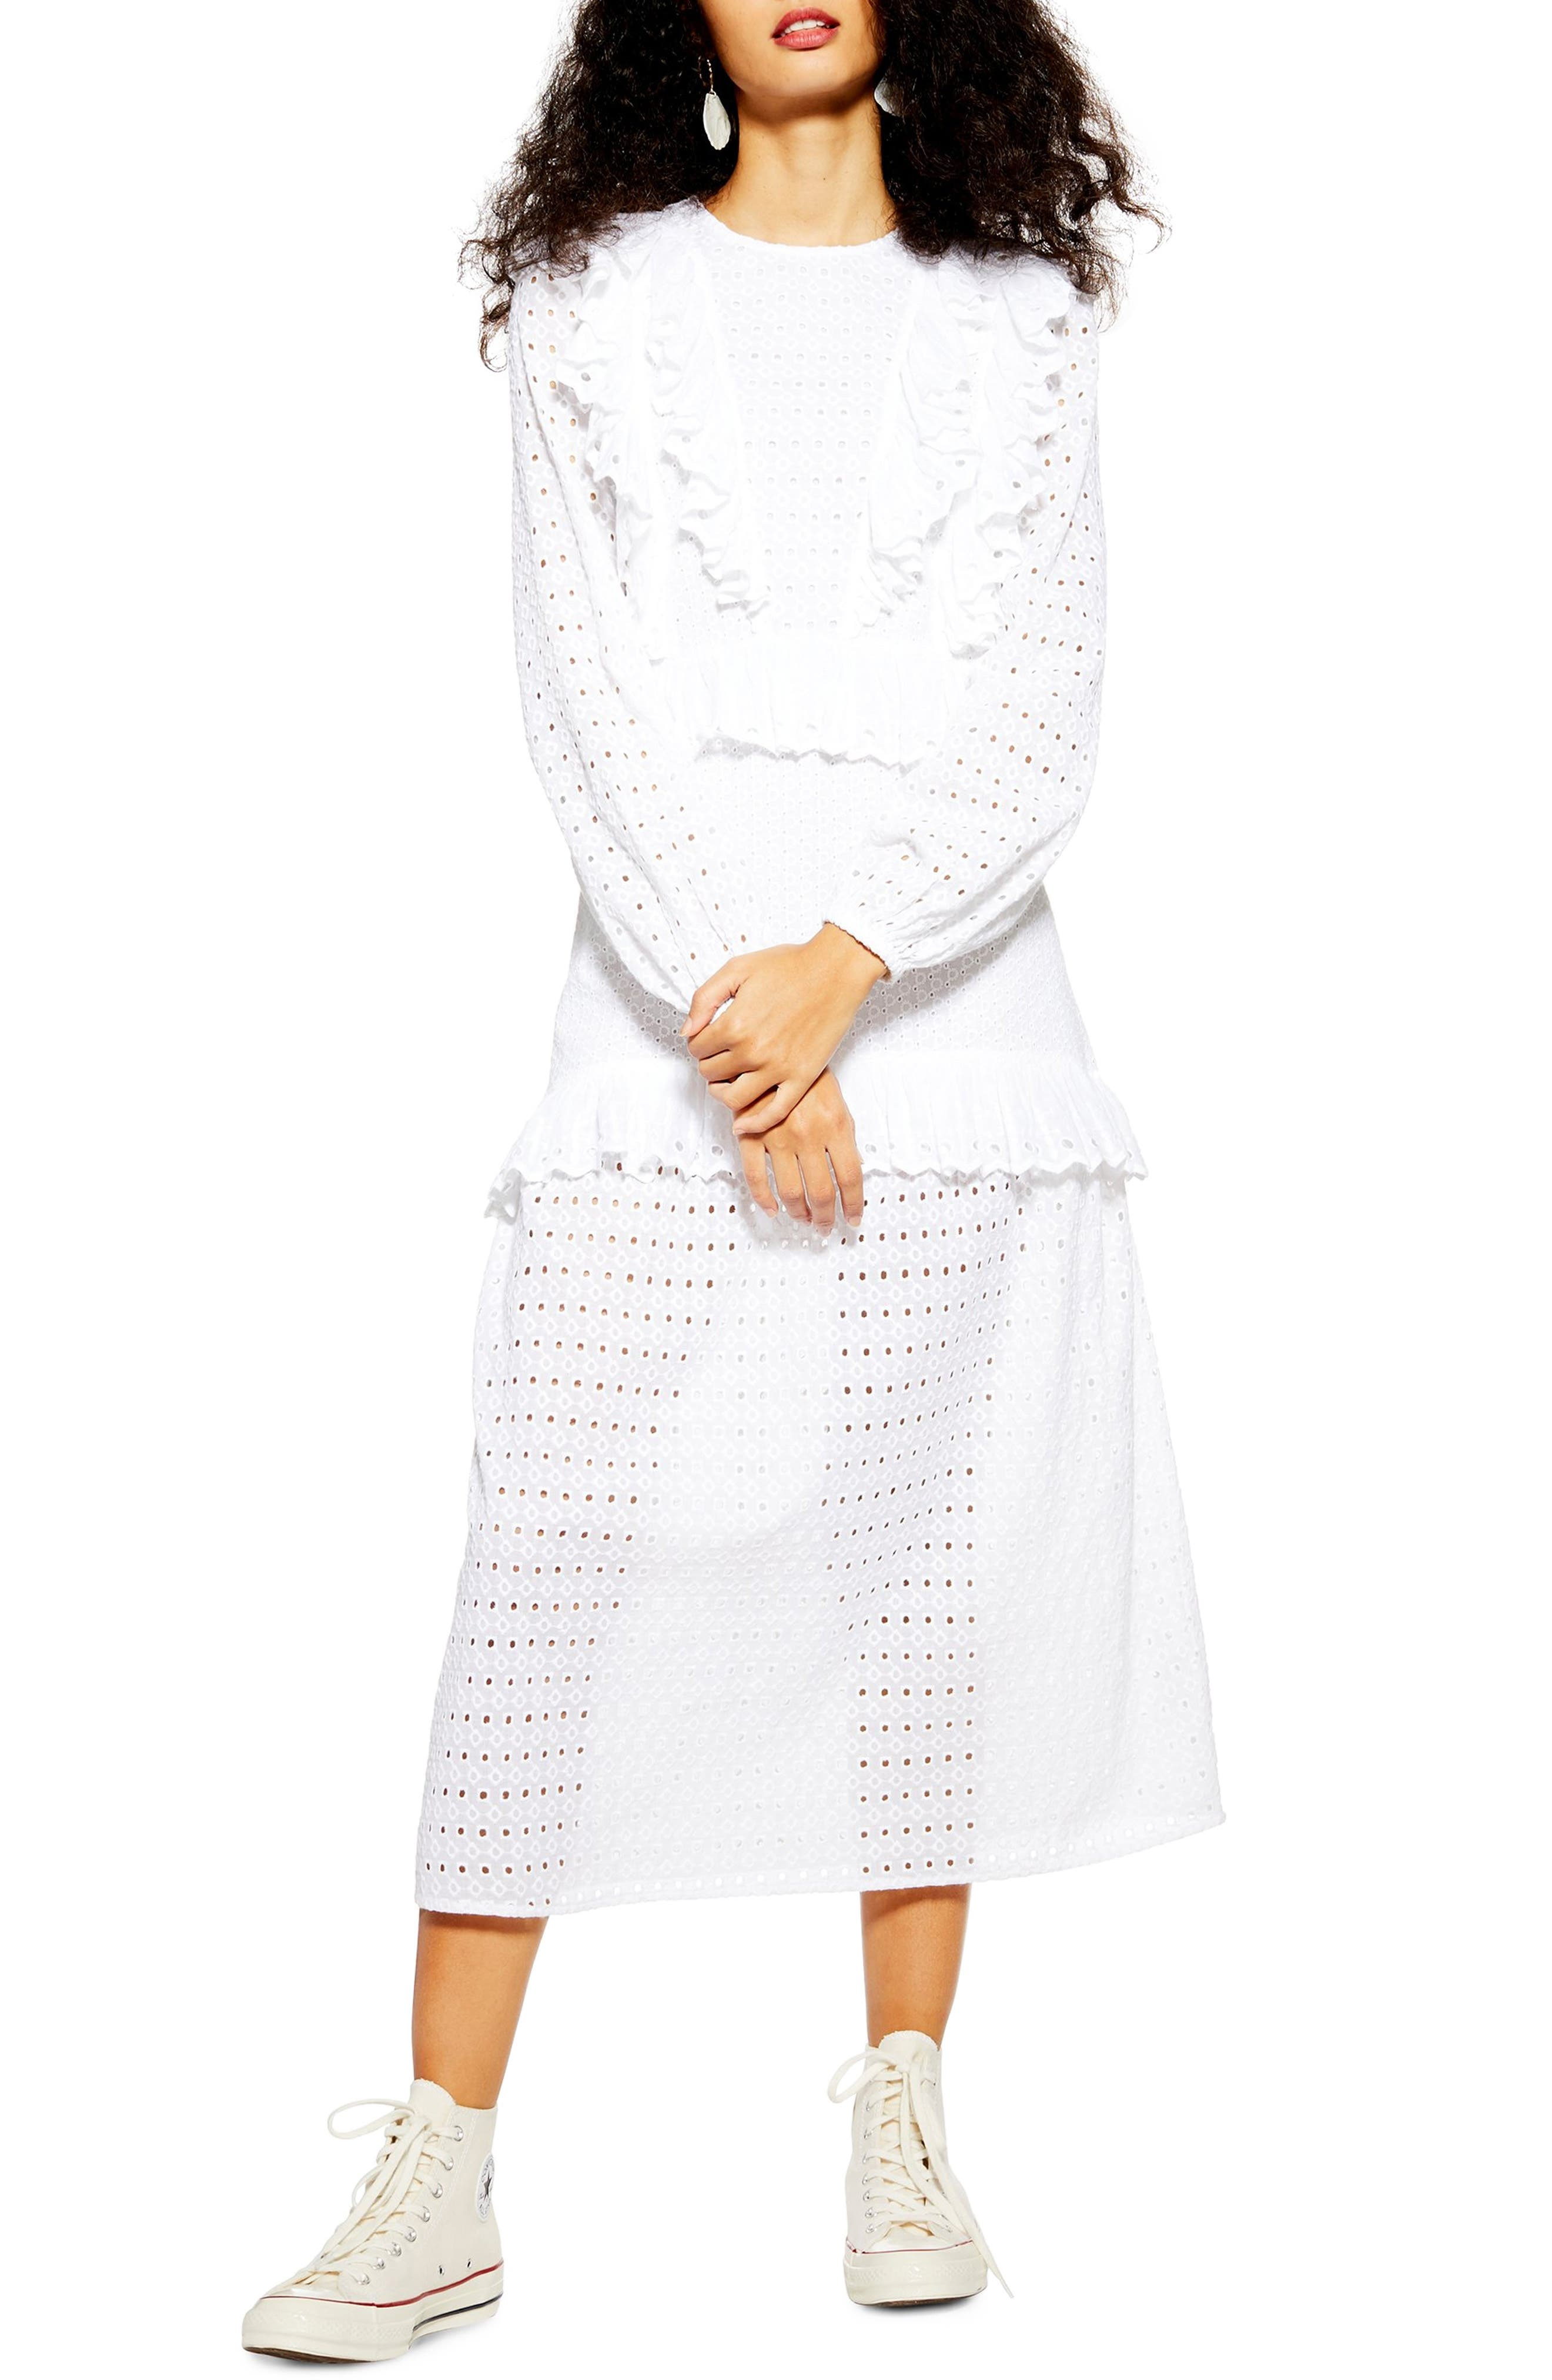 Topshop Broderie Frill Midi Dress, US (fits like 10-12) - Ivory